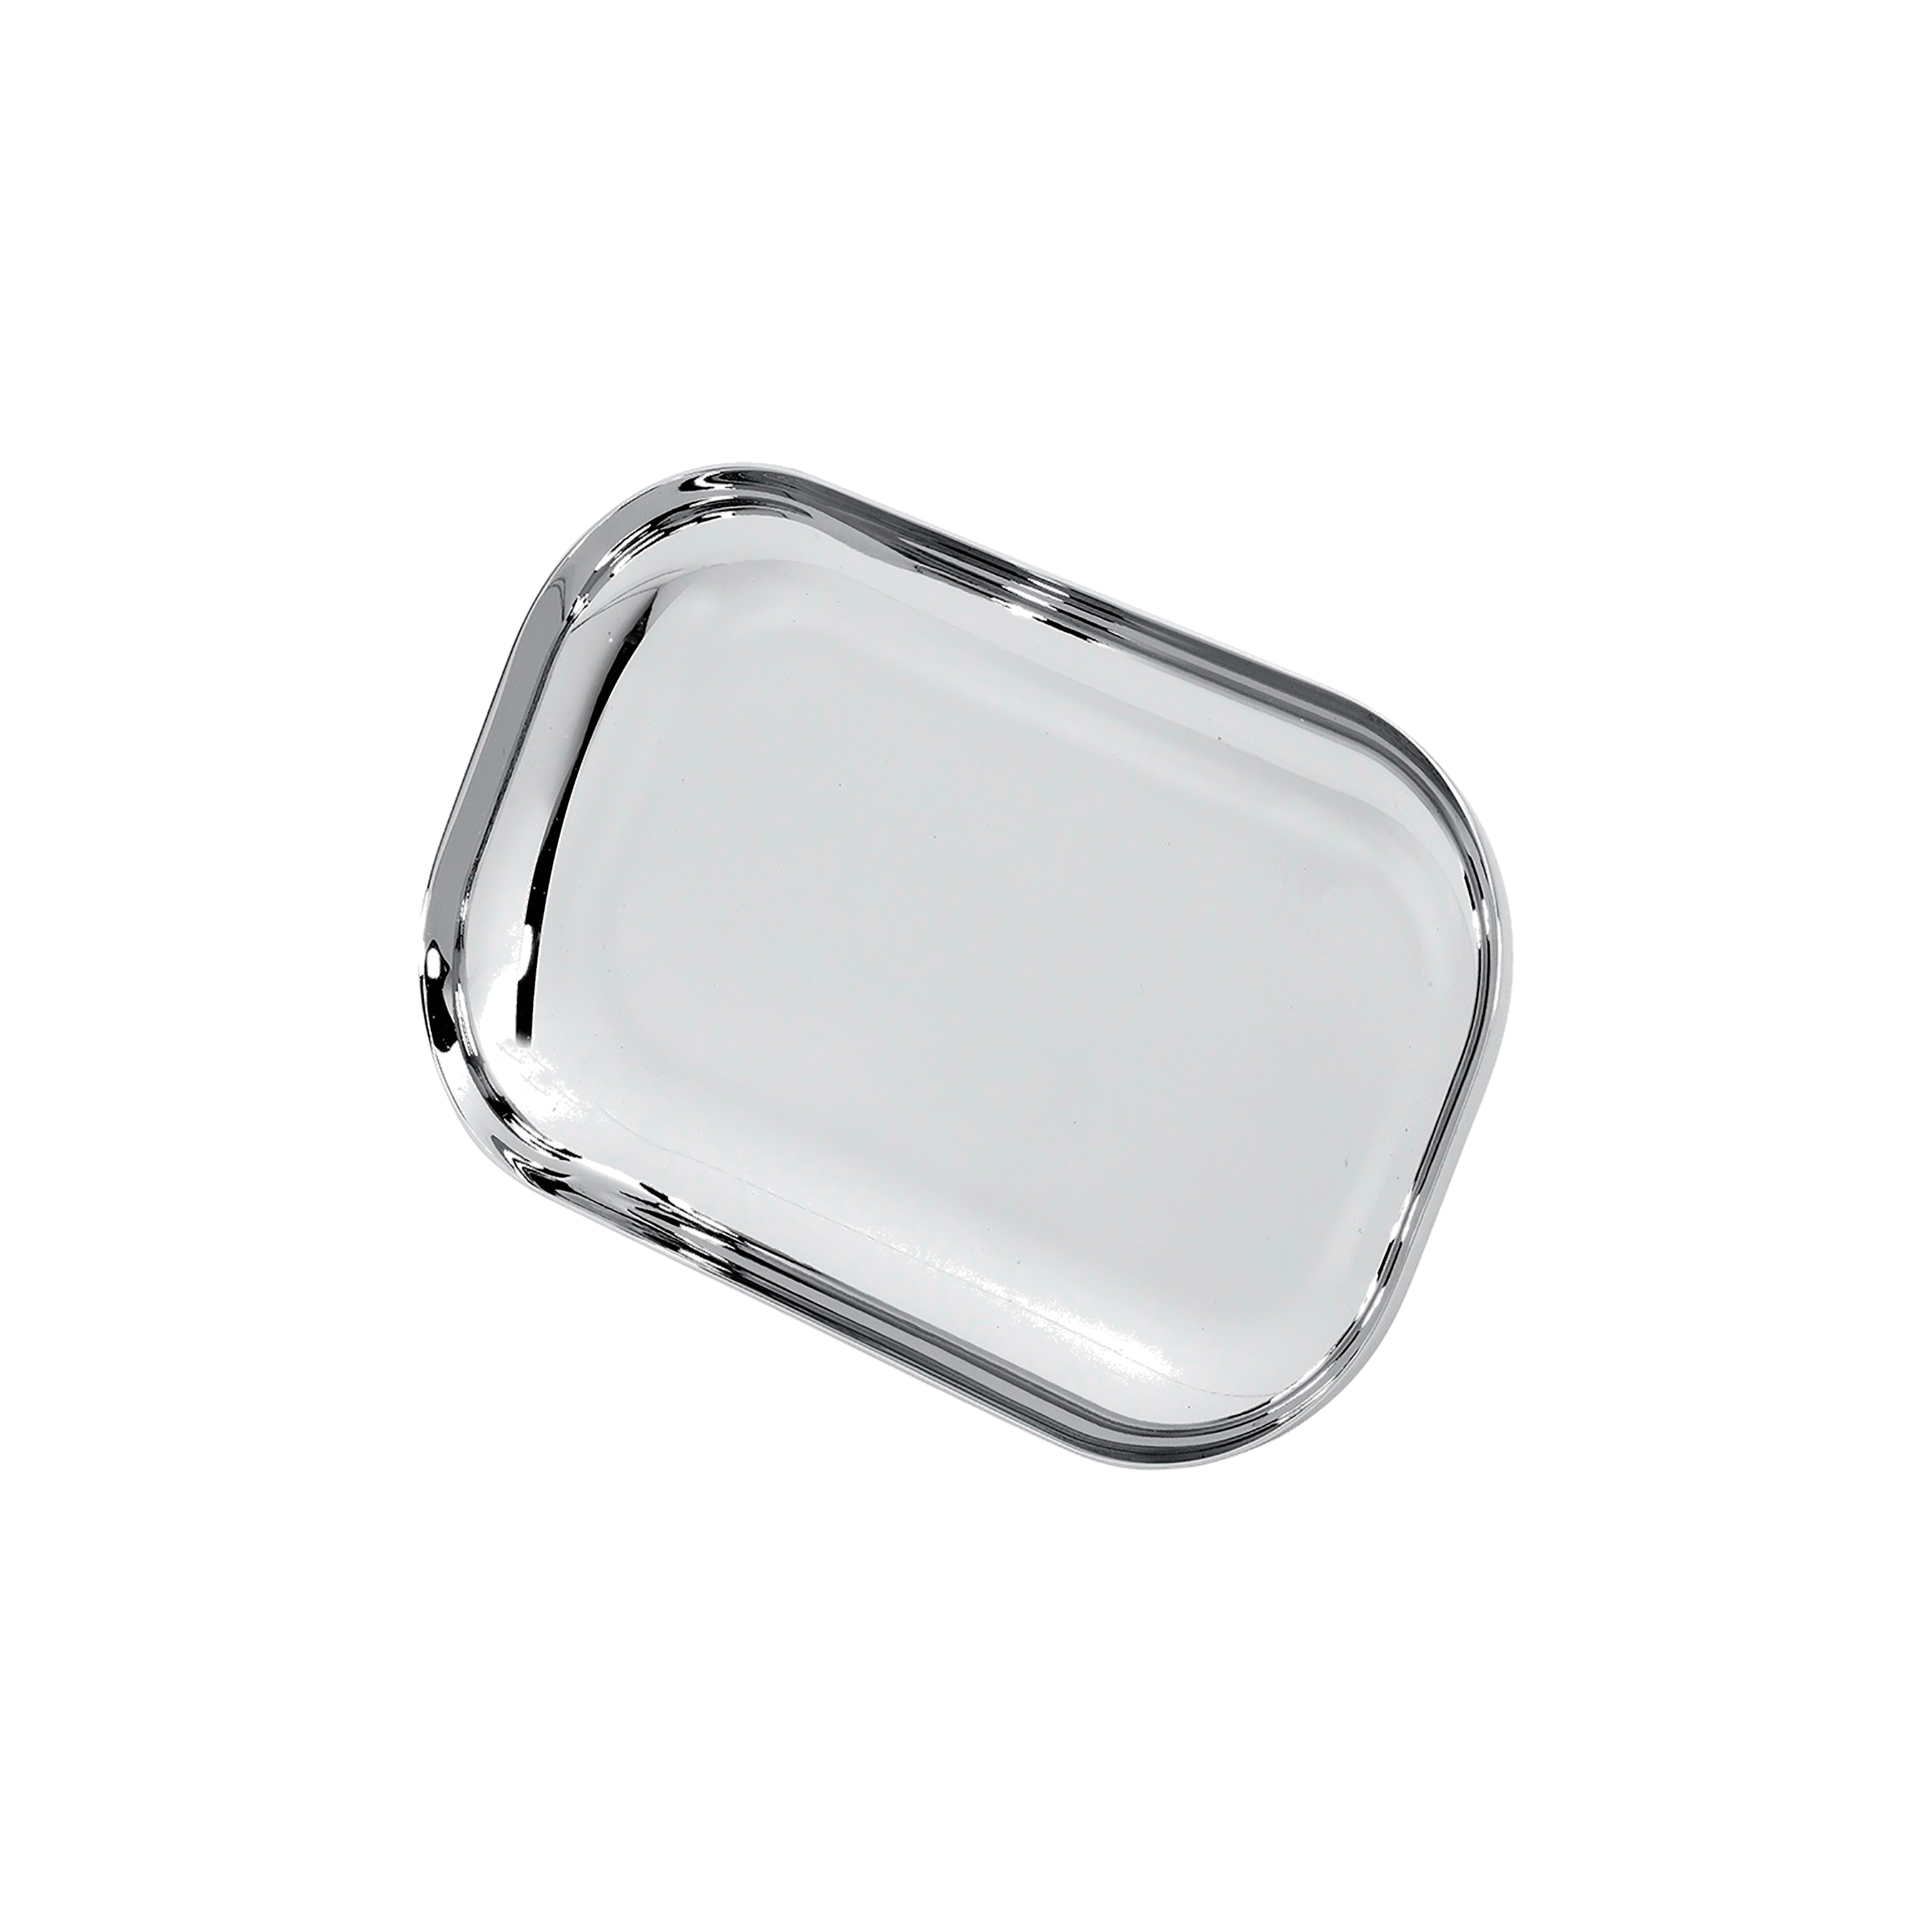 American Standard 012263-0020A Soap Dish, 5 in W x 2.9 in H, Polished Chrome, Import